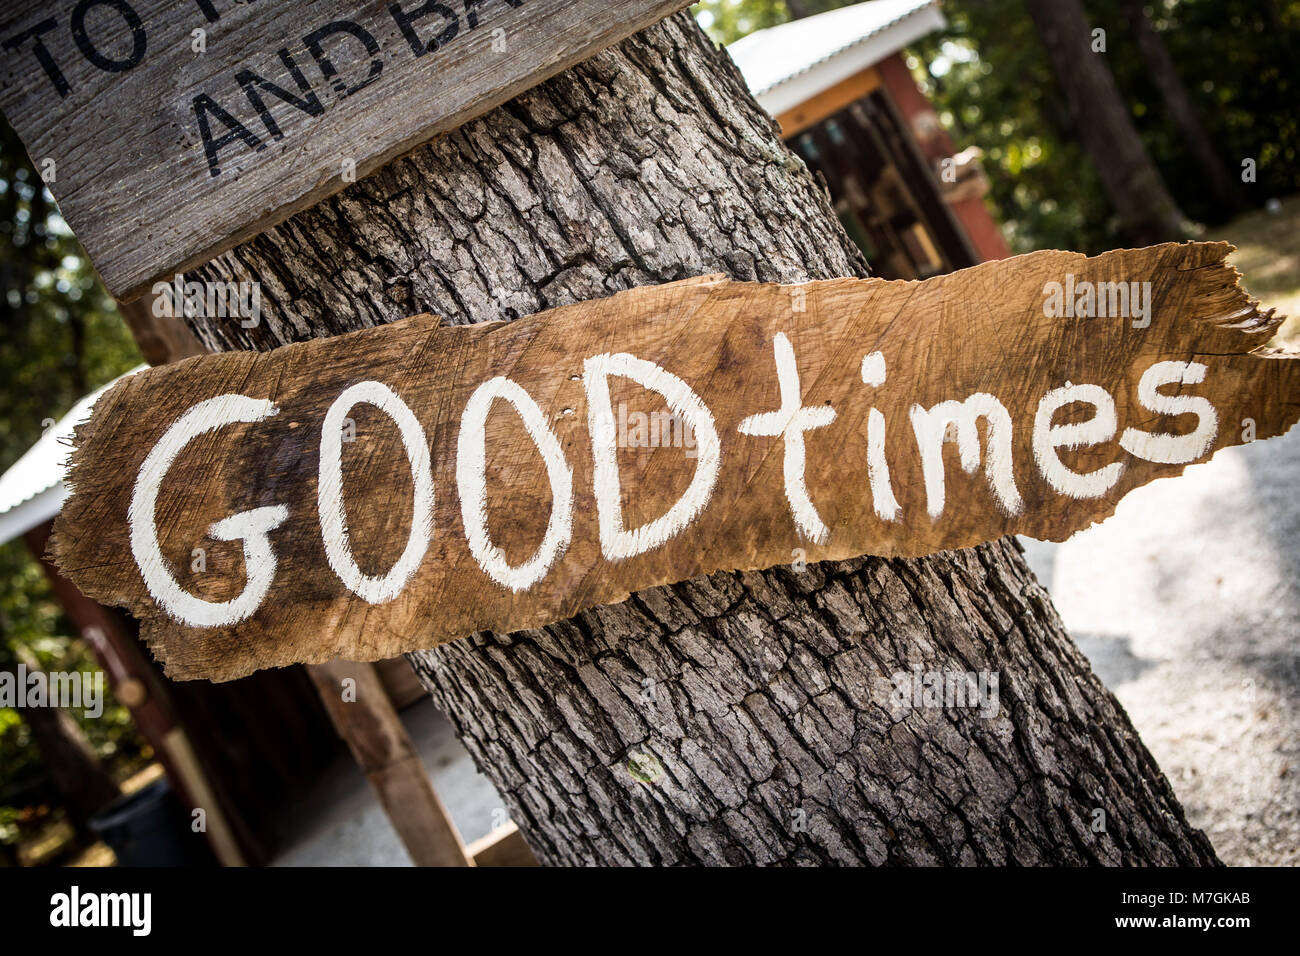 White Good Times hand painted sign on rough wooden board nailed to tree trunk in park or camping place - Stock Image